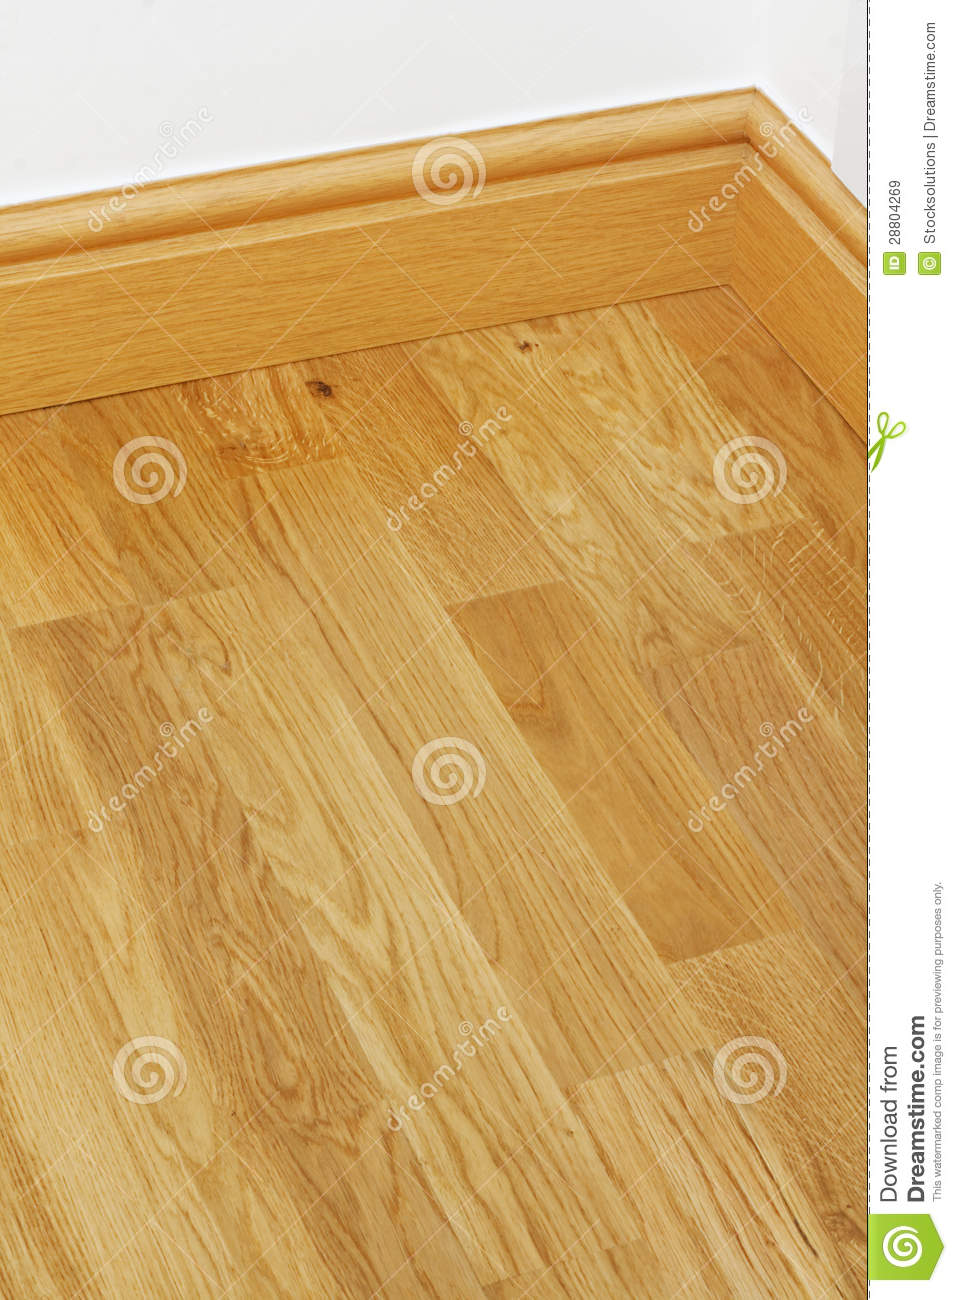 Vinyl Wooden Flooring Mdf Skirting Boards Royalty Free